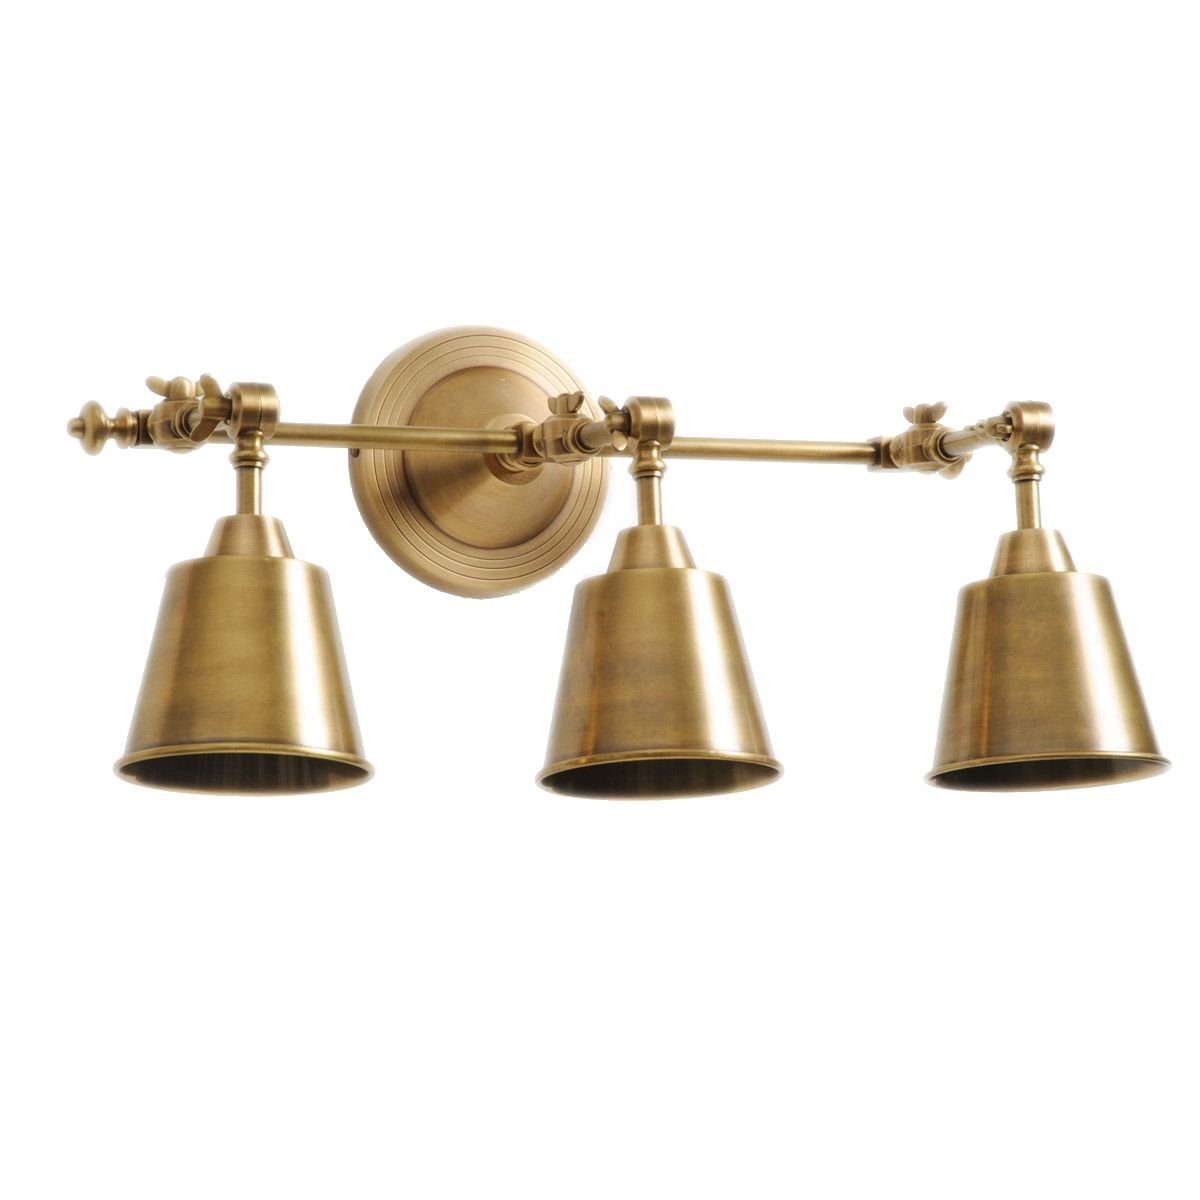 Barbara Cosgrove Library Three Light Antiqued Brass Wall Sconce - Antique brass bathroom light fixtures for bathroom decor ideas